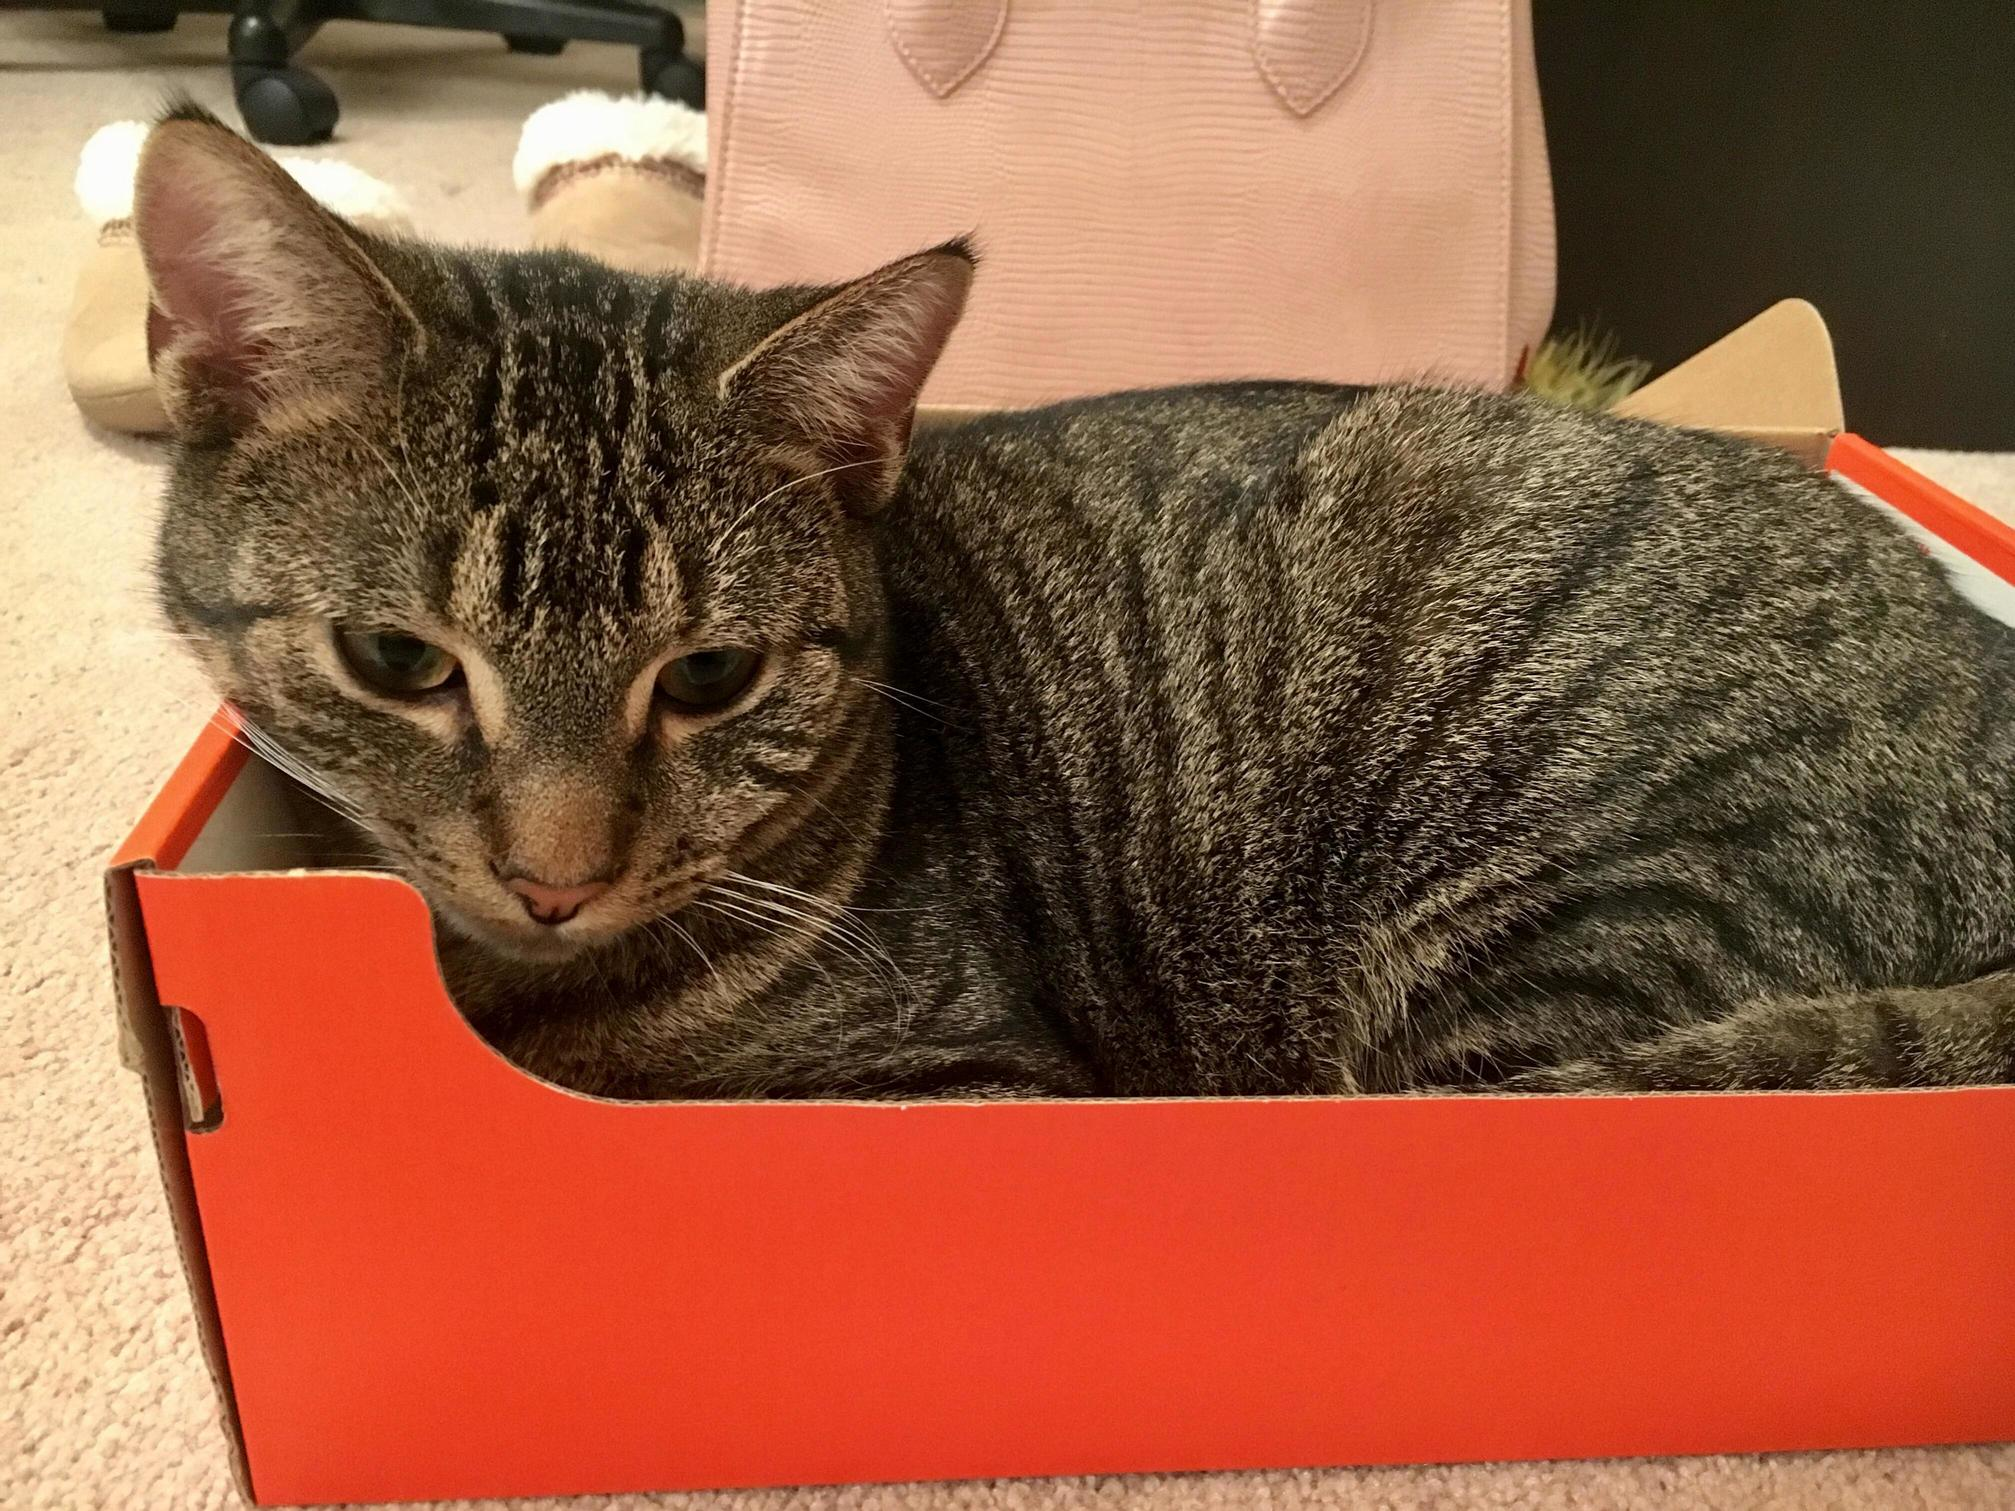 I have a perfectly nice bed for my cat but he prefers a shoebox